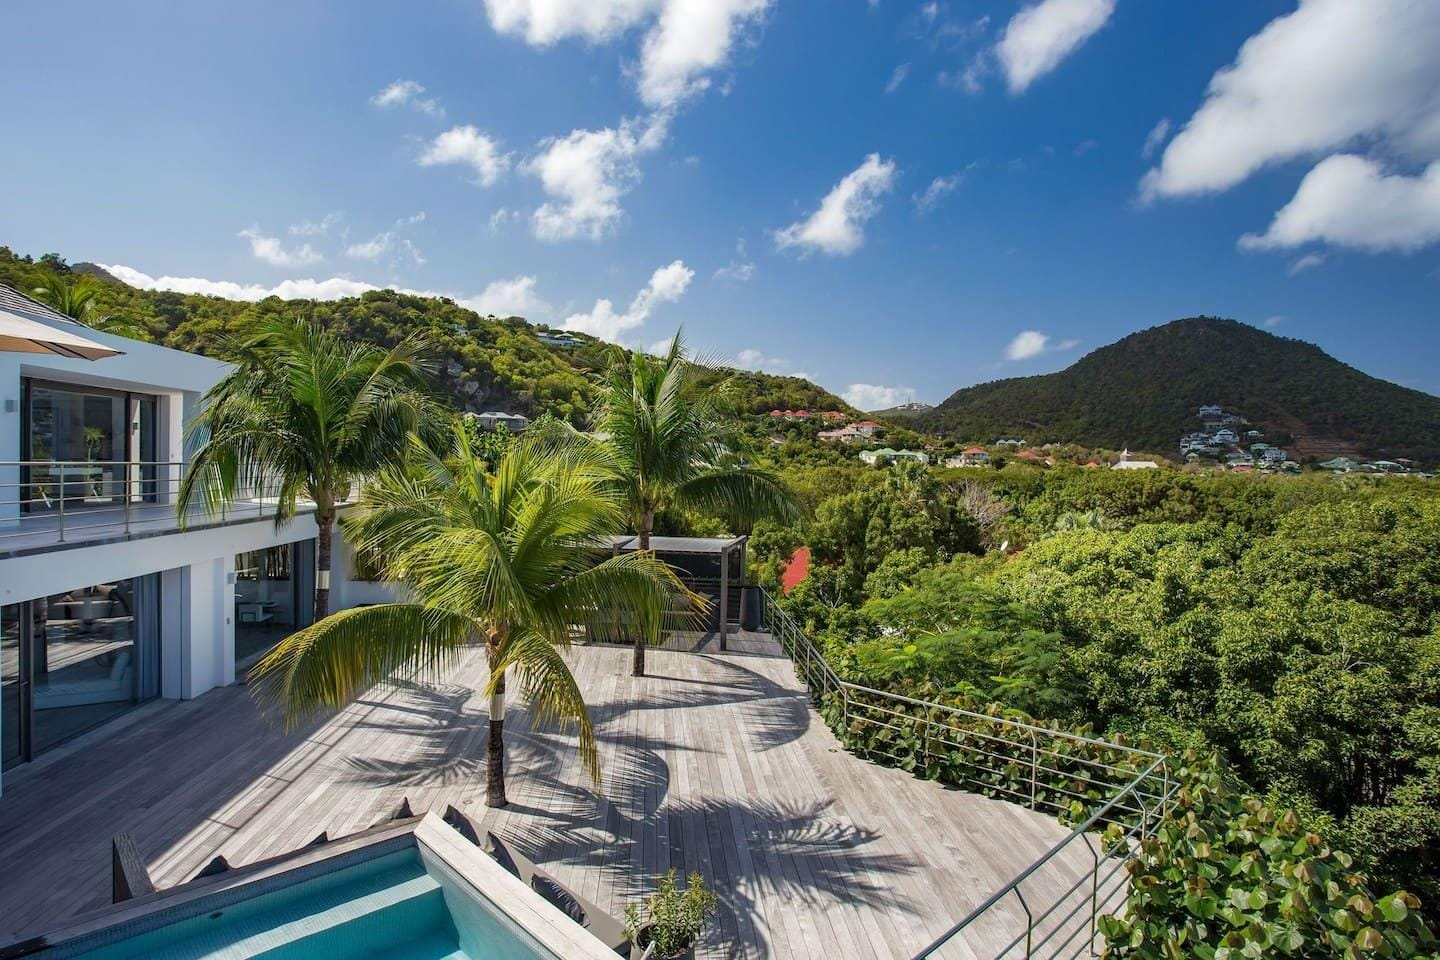 Property Image 1 - Vibrant Sunny Villa with an Amazing Sea View